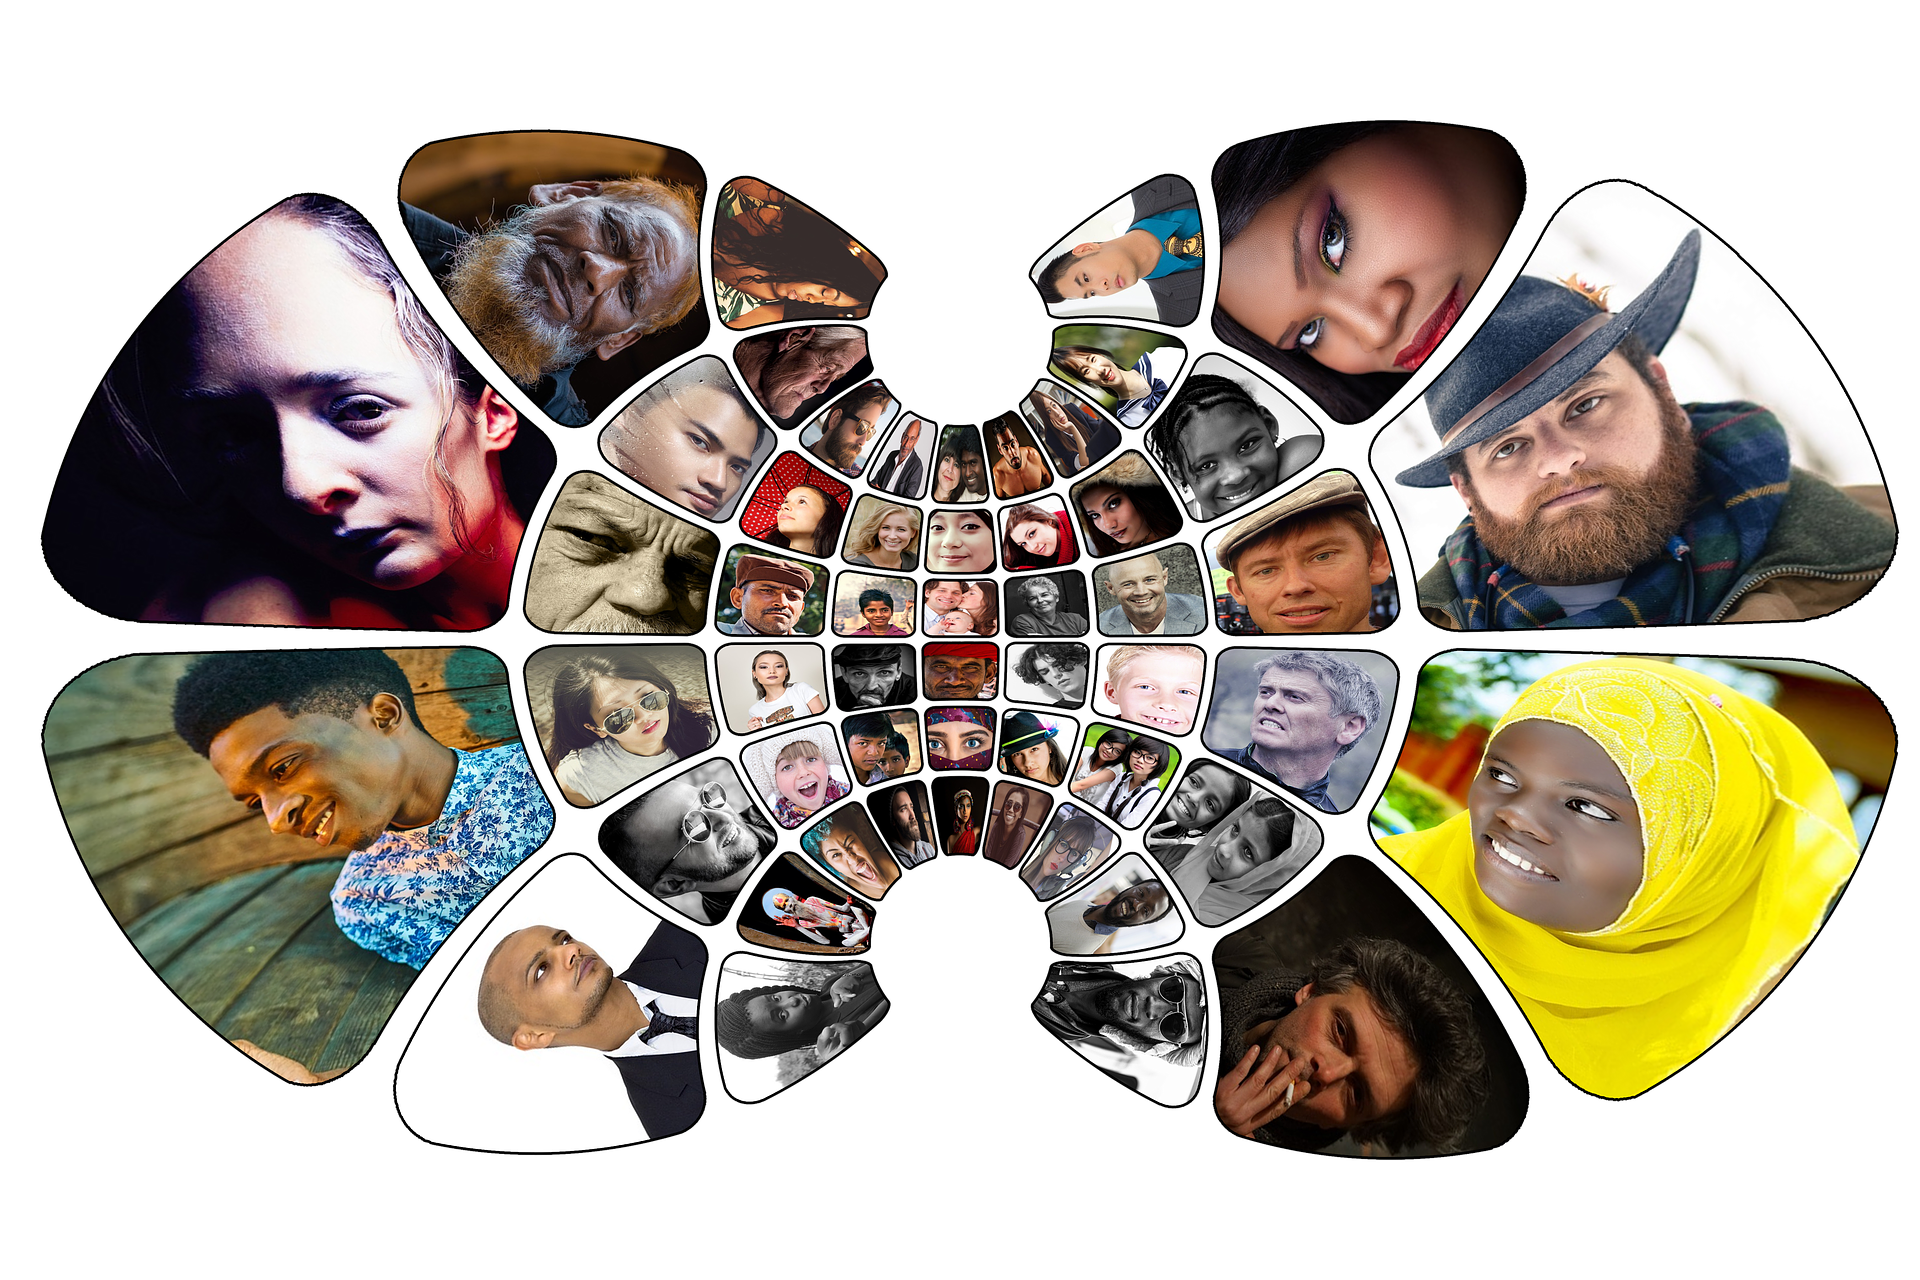 faces-2679907_1920.png